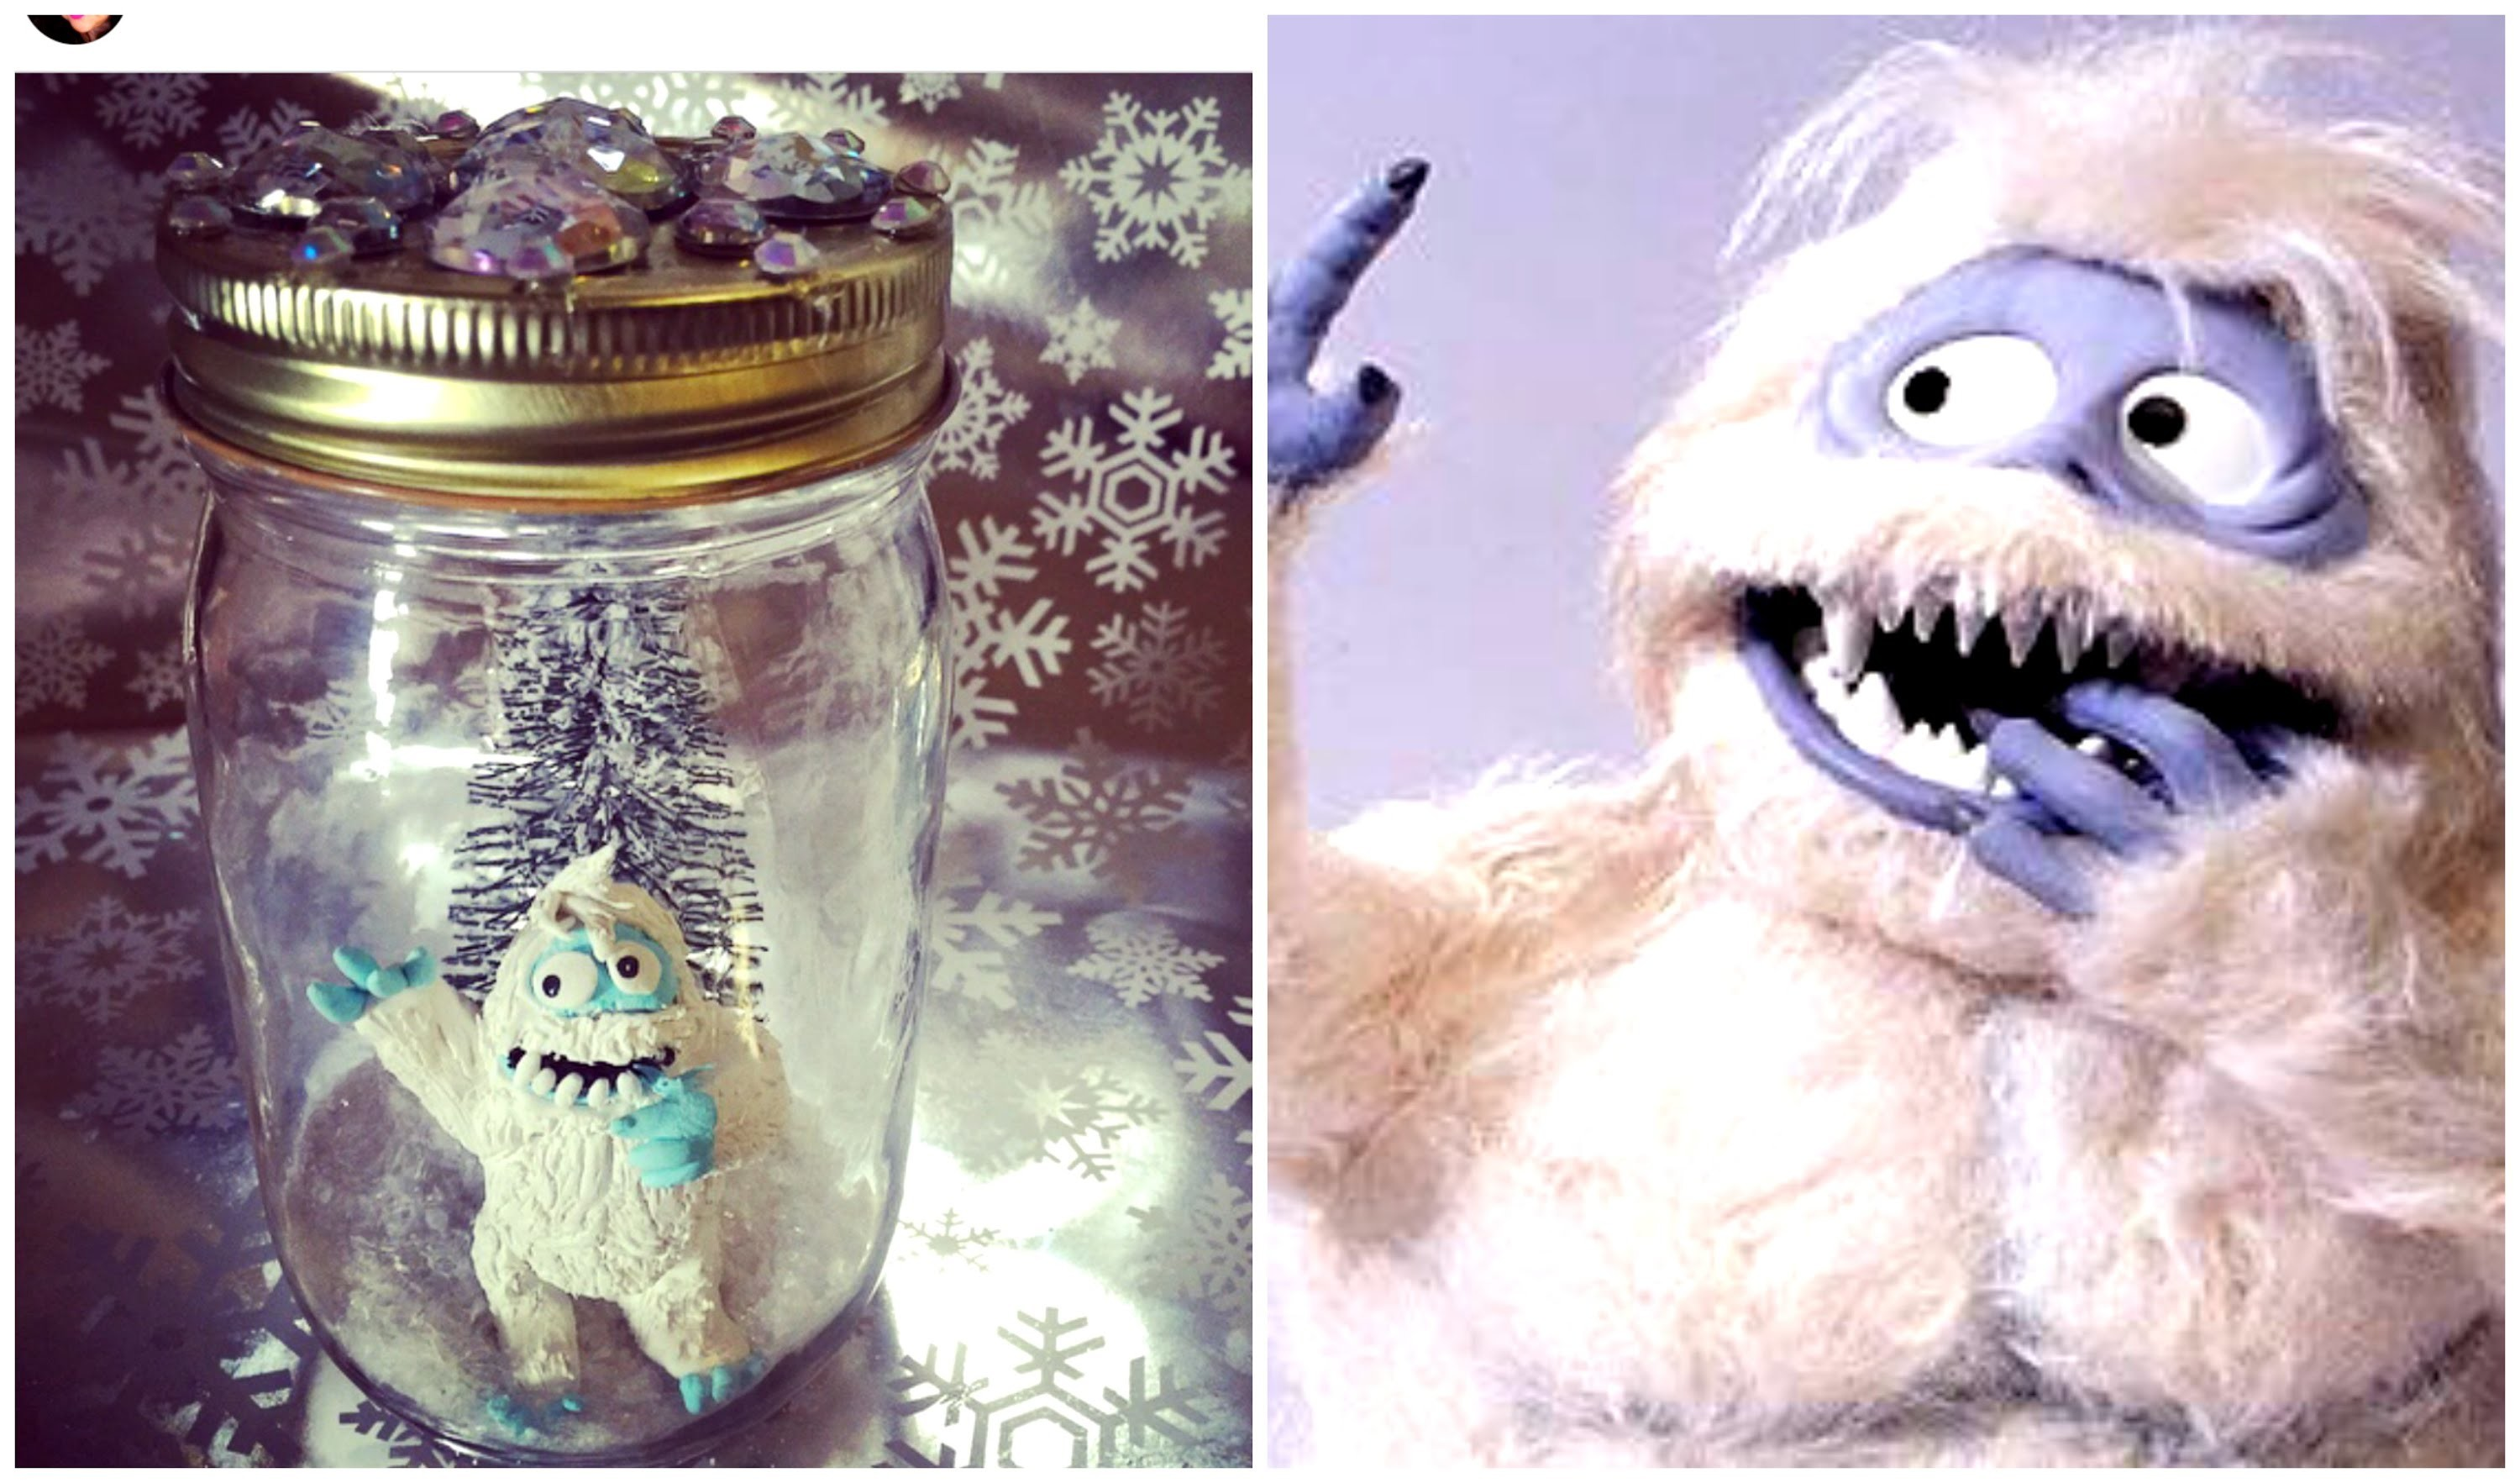 DIY ABOMINABLE SNOWMAN IN A JAR